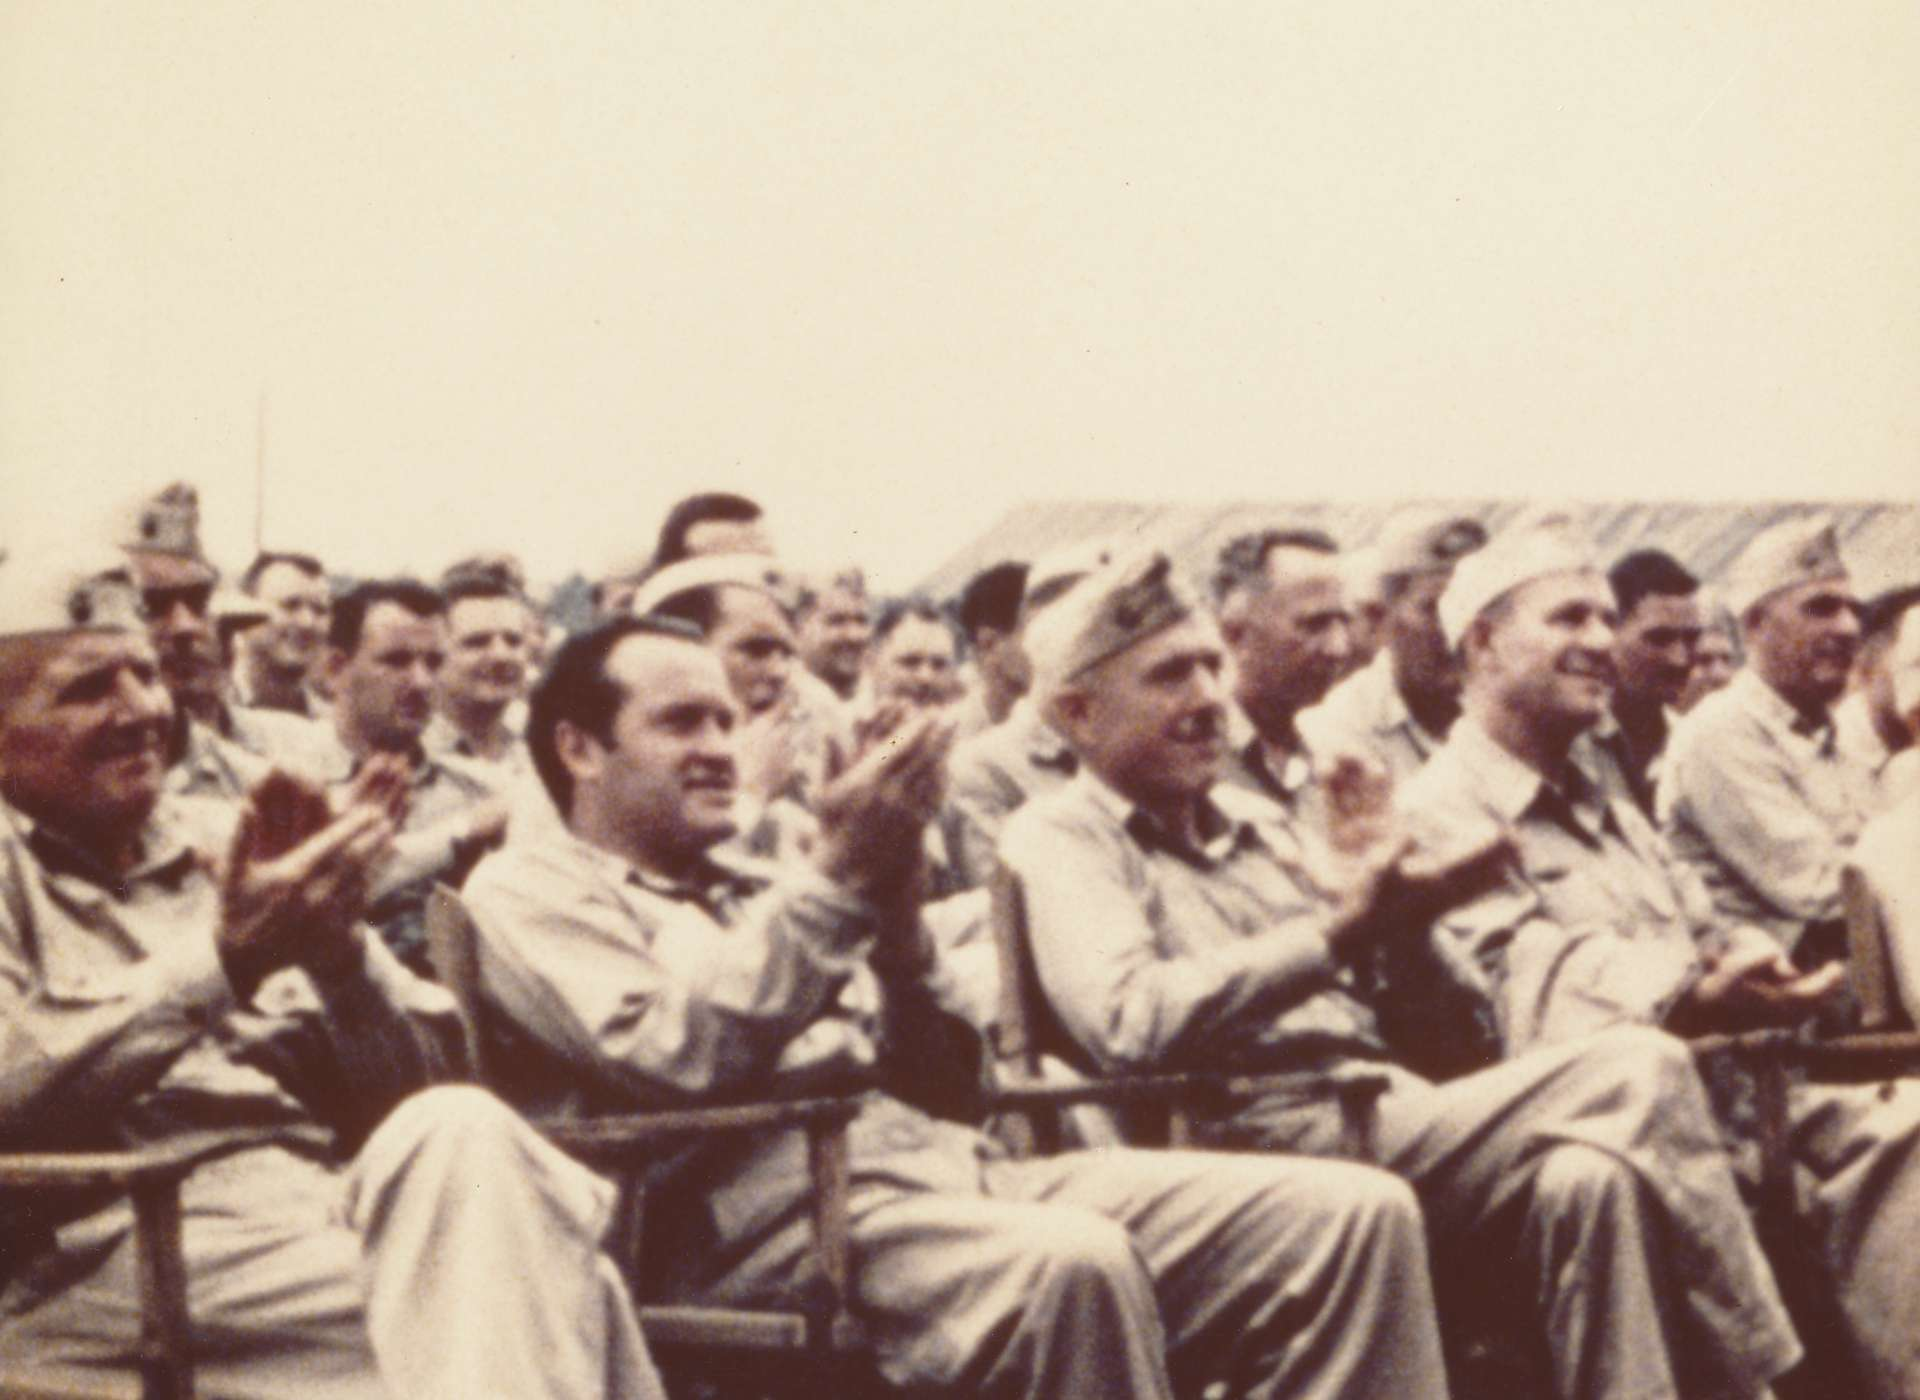 Bob Hope watching his troupe perform on Pavuvu, August 1944